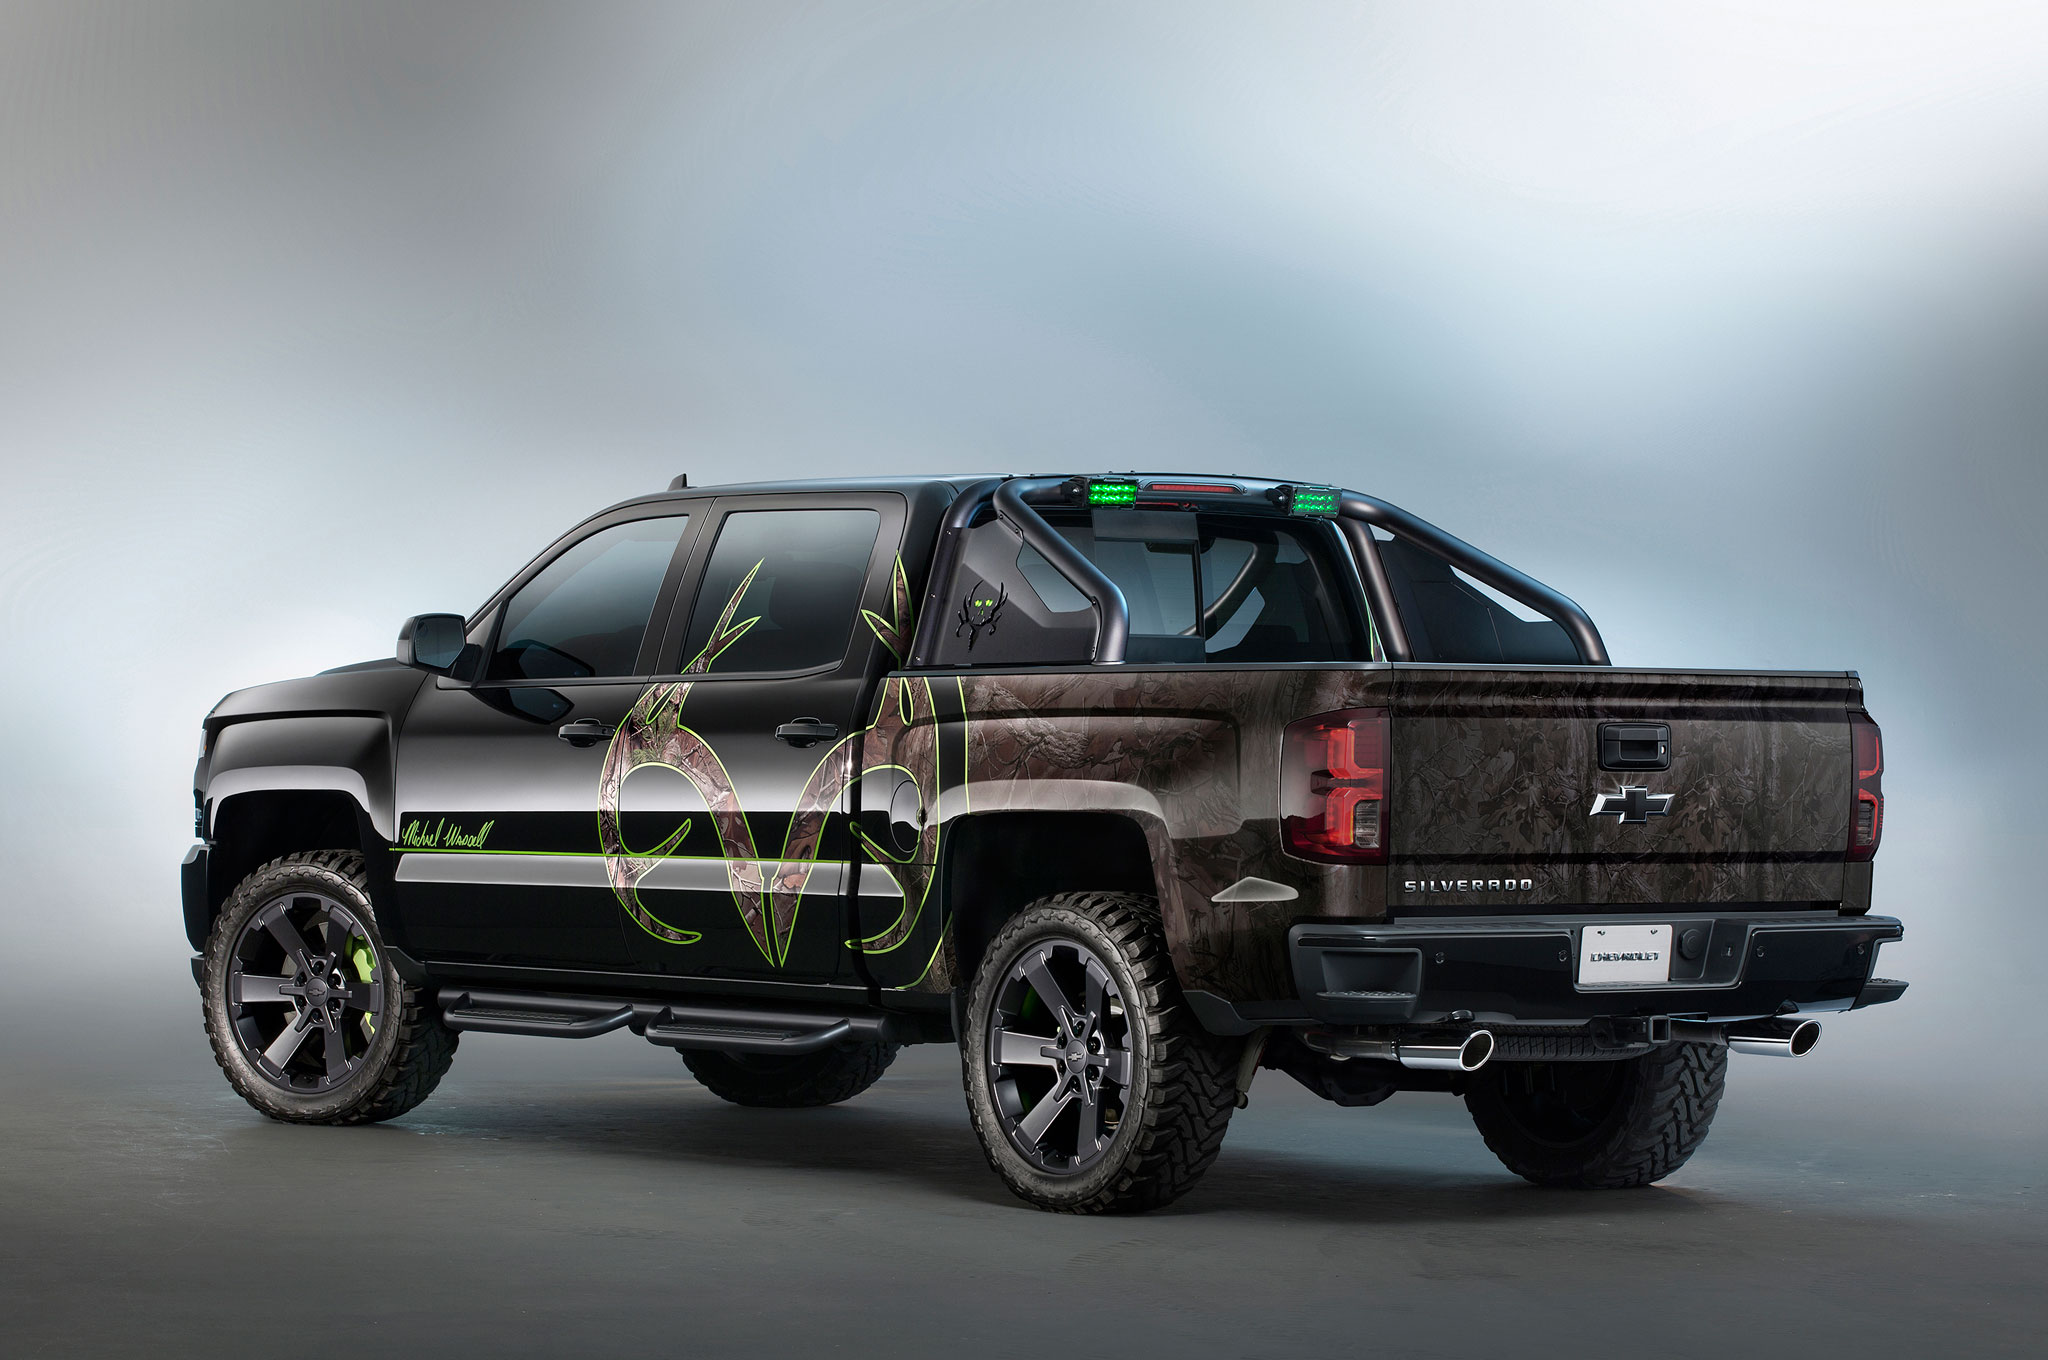 2016 chevrolet silverado adds hunting inspired realtree. Black Bedroom Furniture Sets. Home Design Ideas